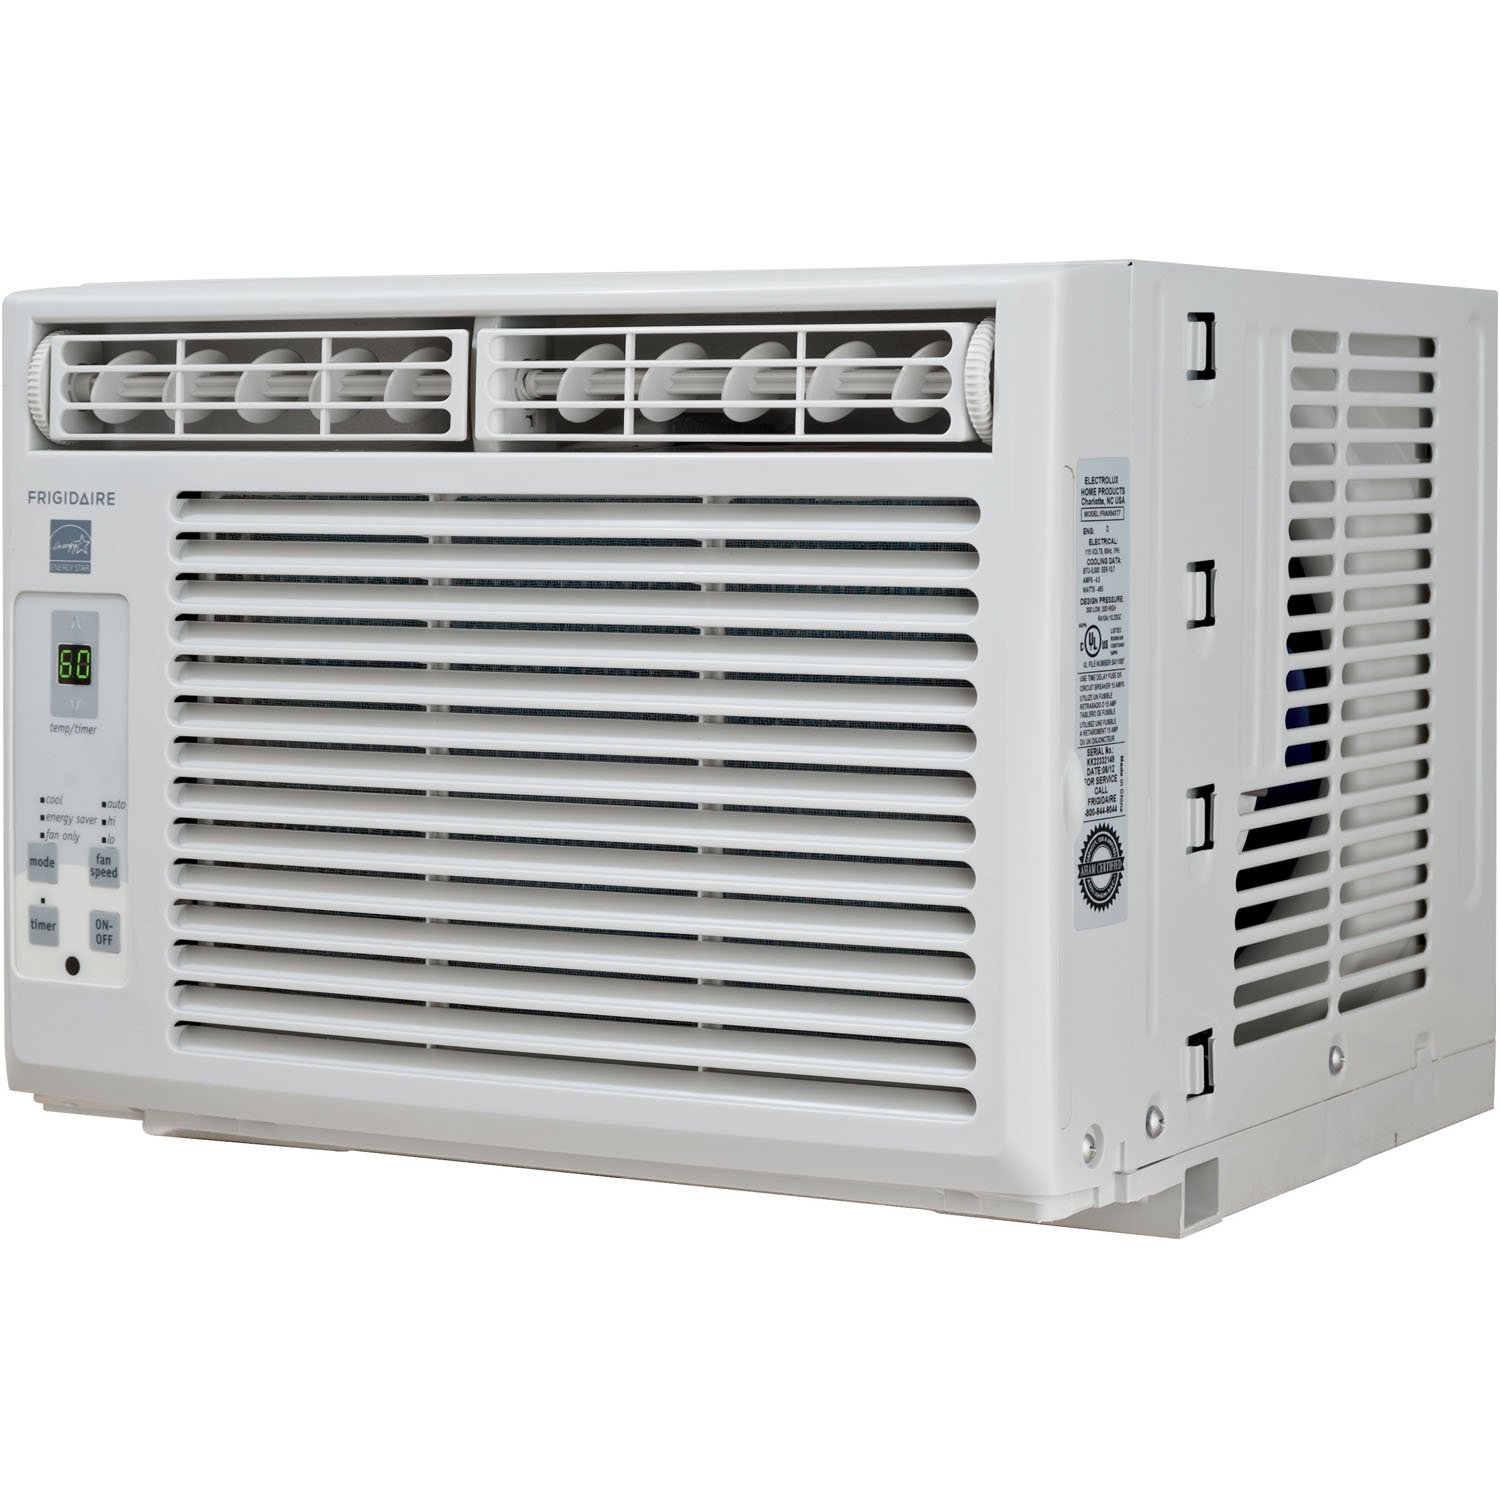 compact window air conditioner tall window amazoncom frigidaire ffre0533q1 5000 btu 115v windowmounted minicompact air conditioner with fullfunction remote control home kitchen mini